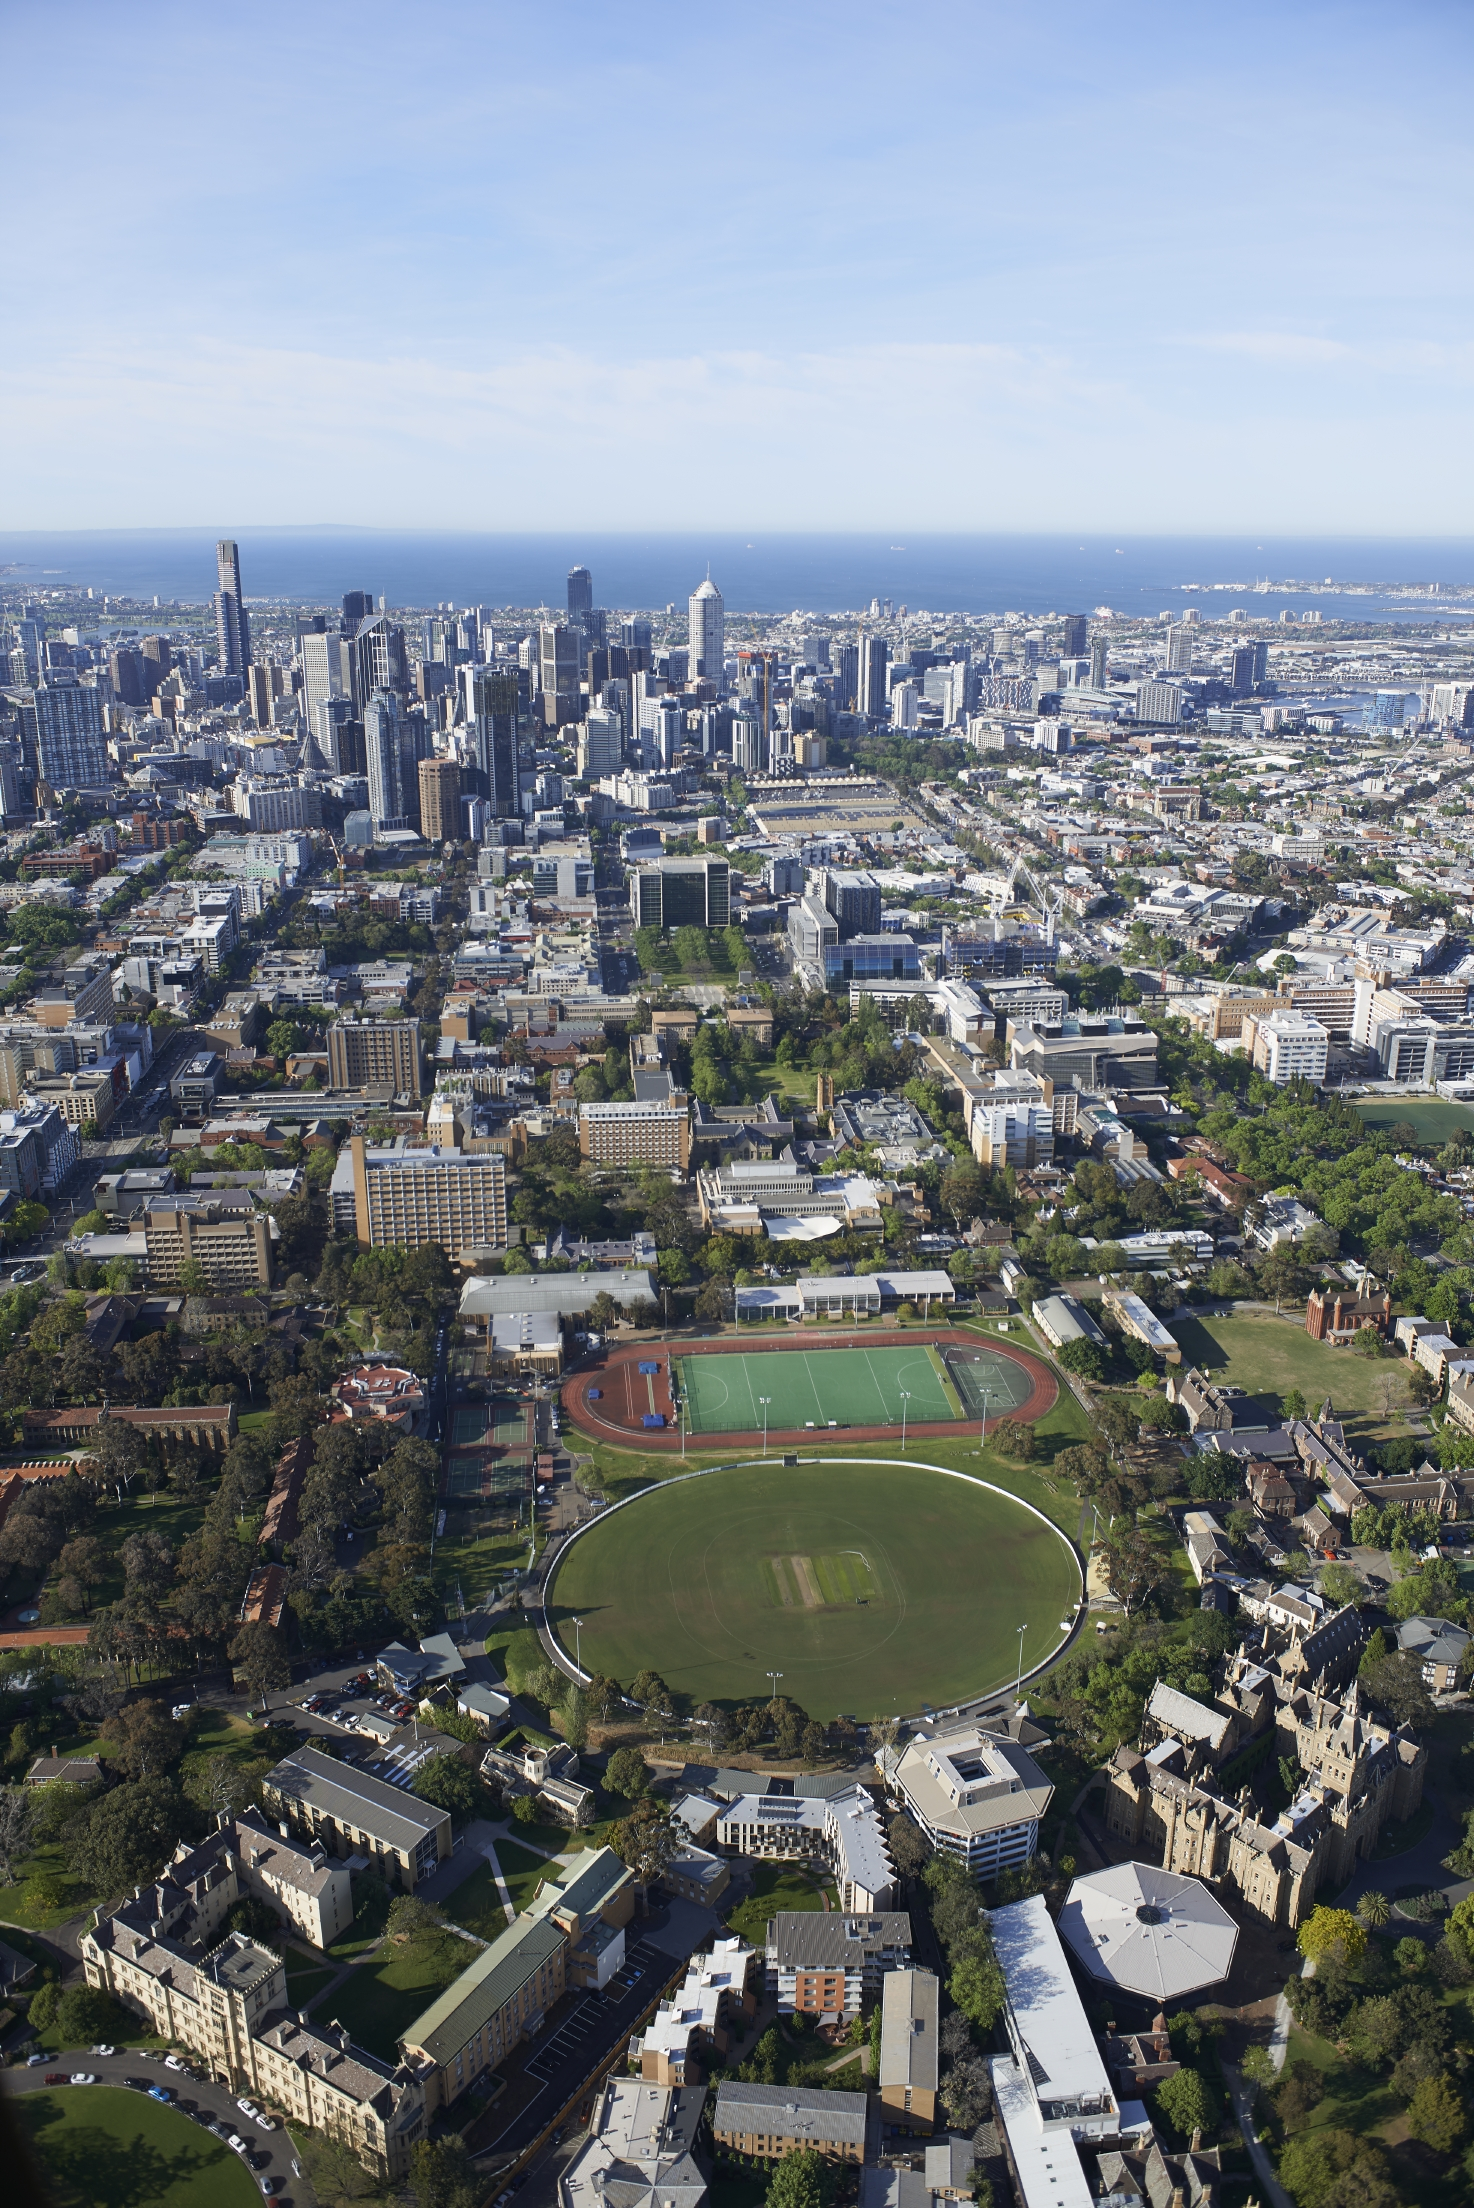 Aerial View Parkville Campus and Melbourne CBD